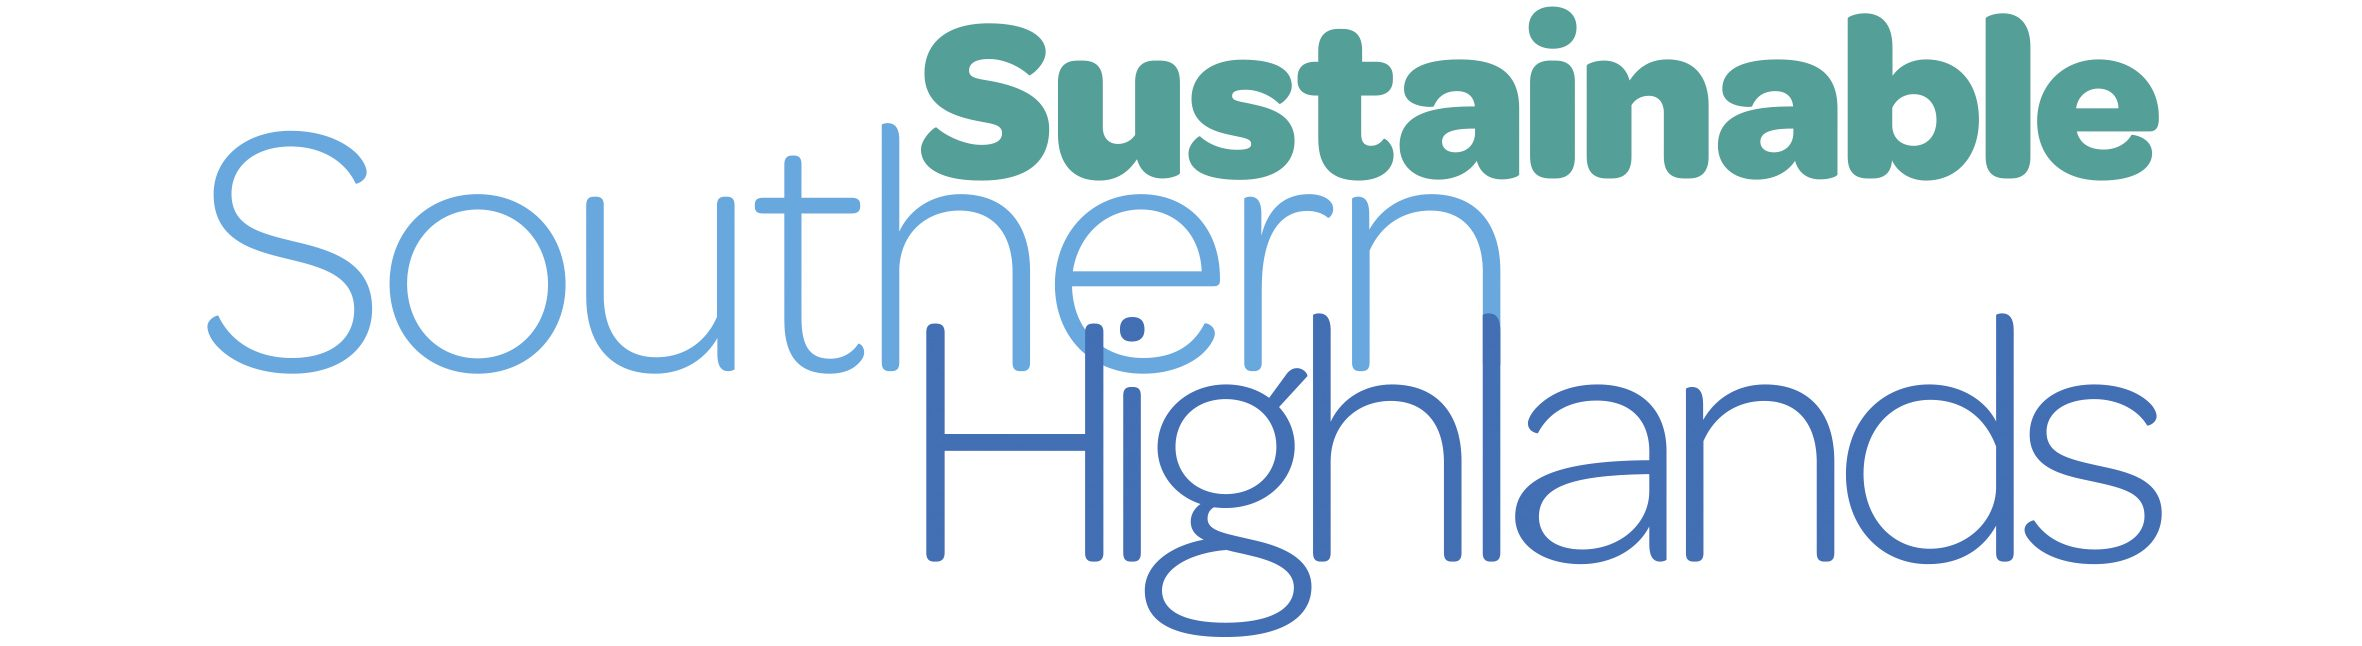 Sustainable Southern Highlands